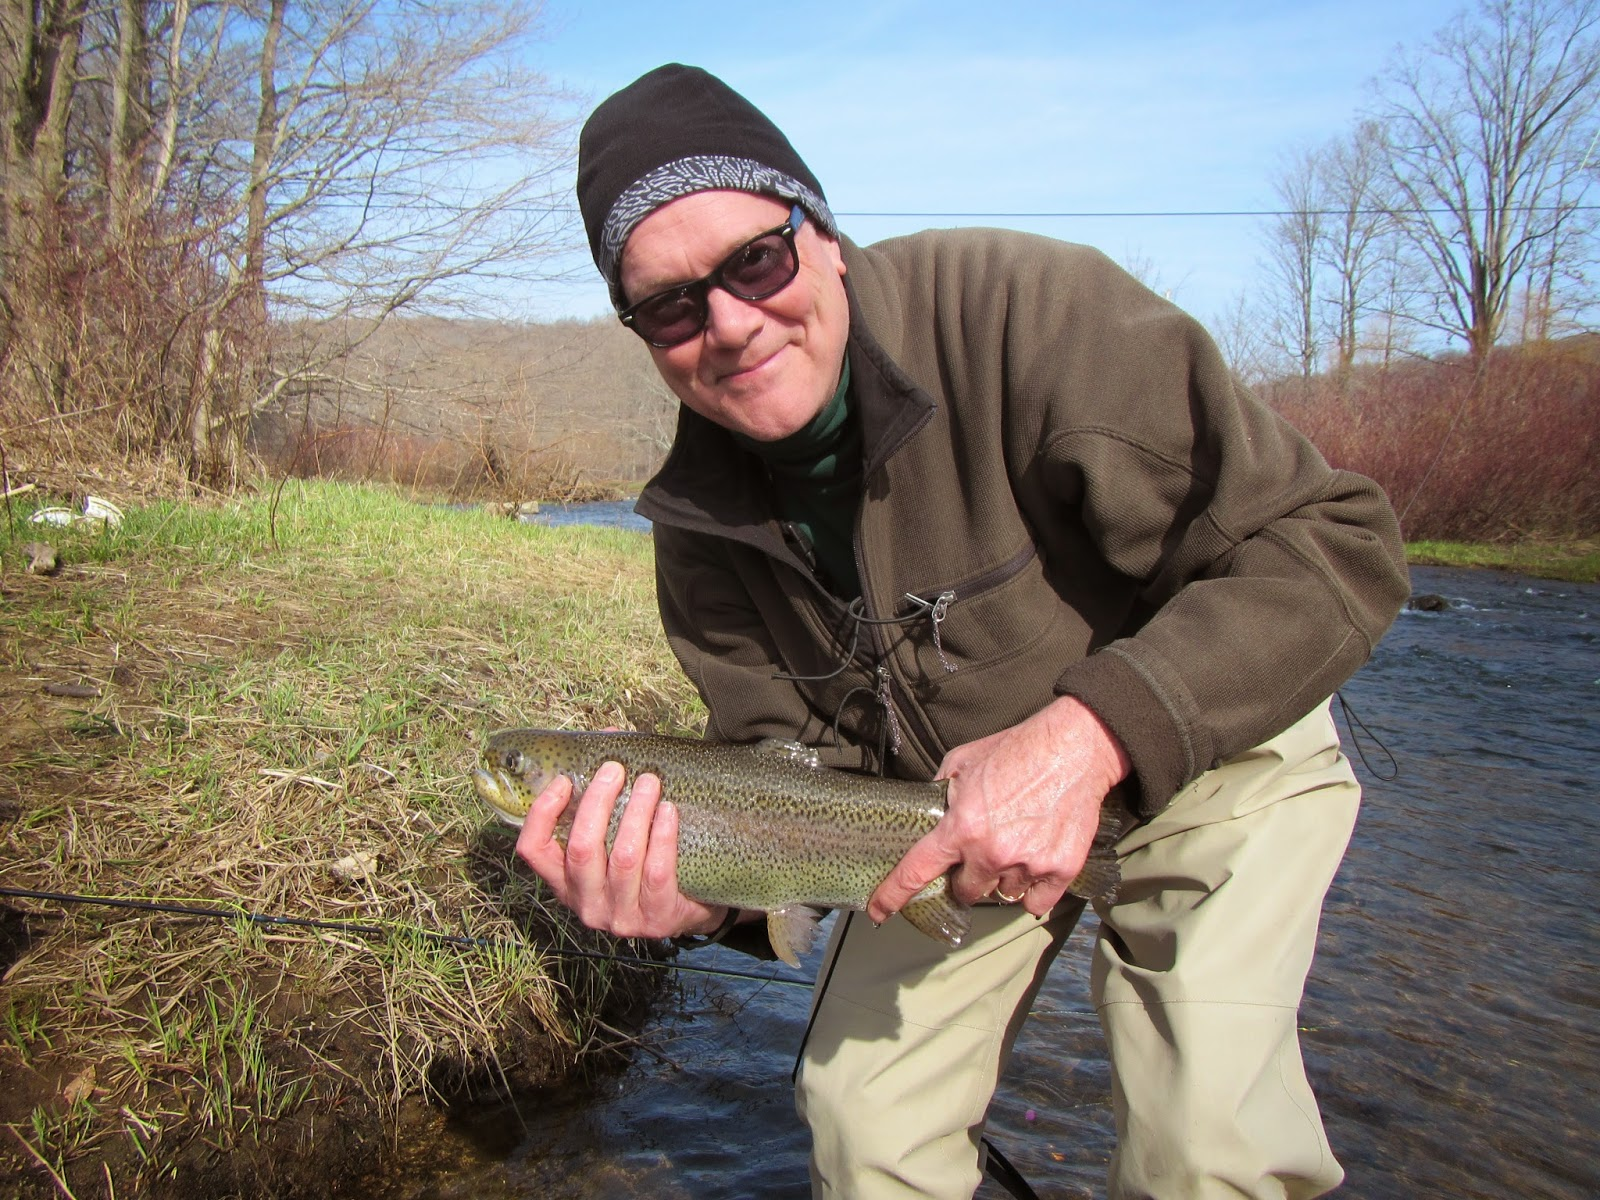 Western maryland fly fishing low flows and blue quills on for Trout fishing maryland